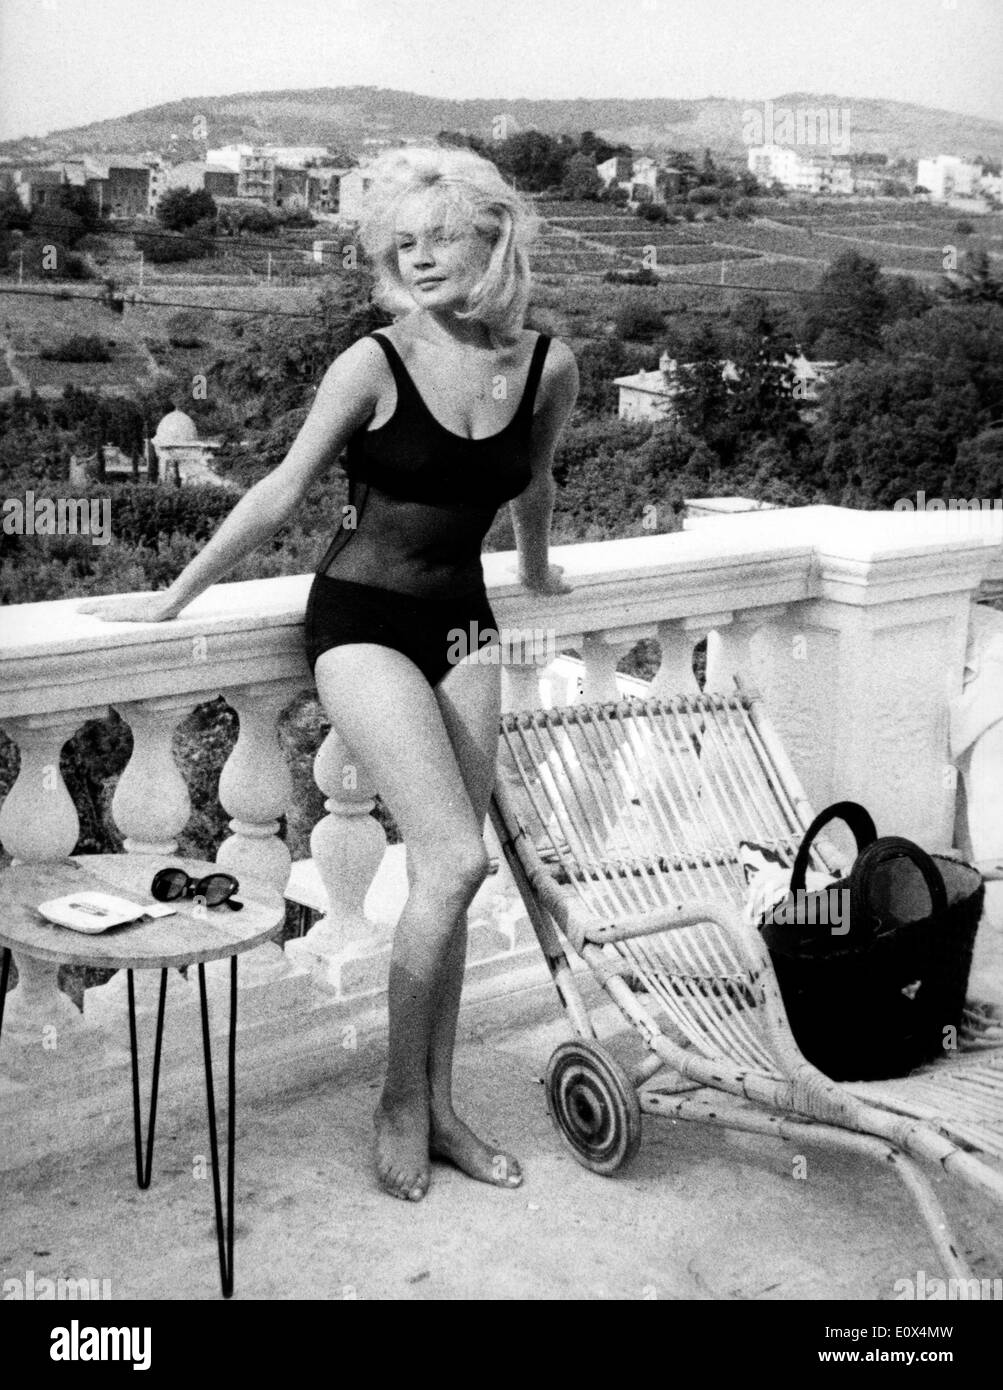 may-07-1965-rome-italy-sandra-dee-is-in-